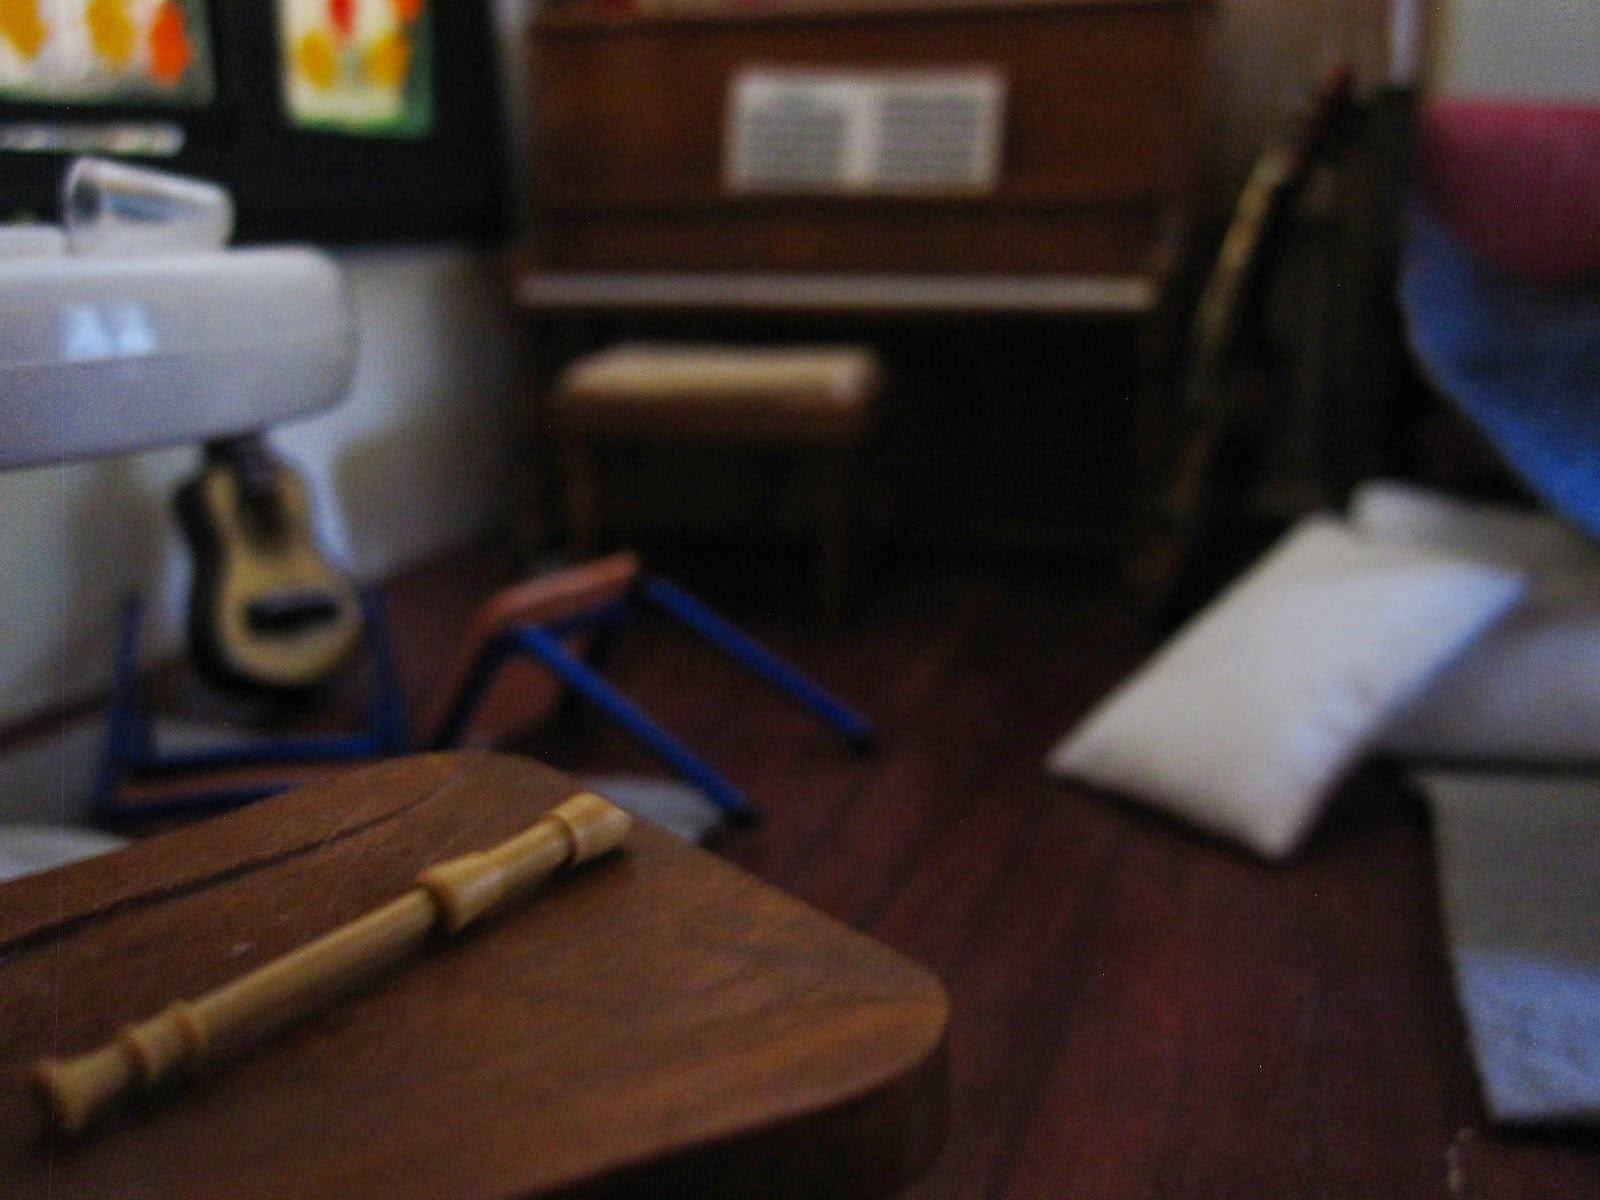 Modern dolls' house miniature post-party scene showing a piano, guitar and recorder, plus a broken chair.